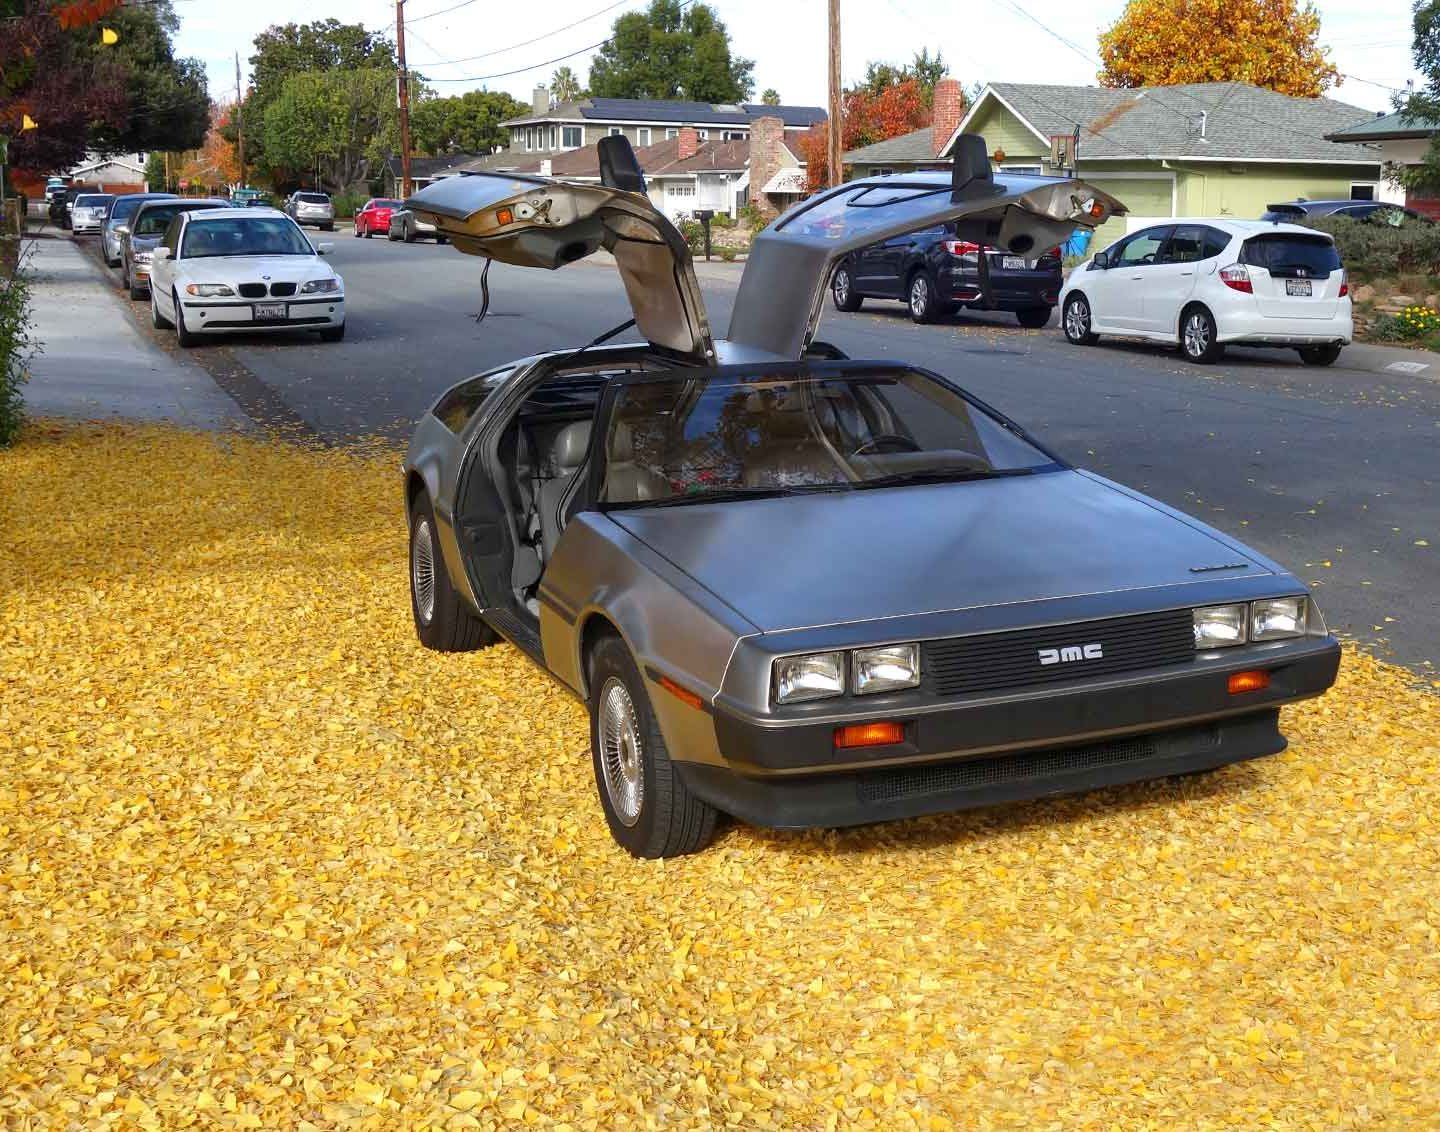 """Quora: """"What do you like the most about a DeLorean car?"""""""